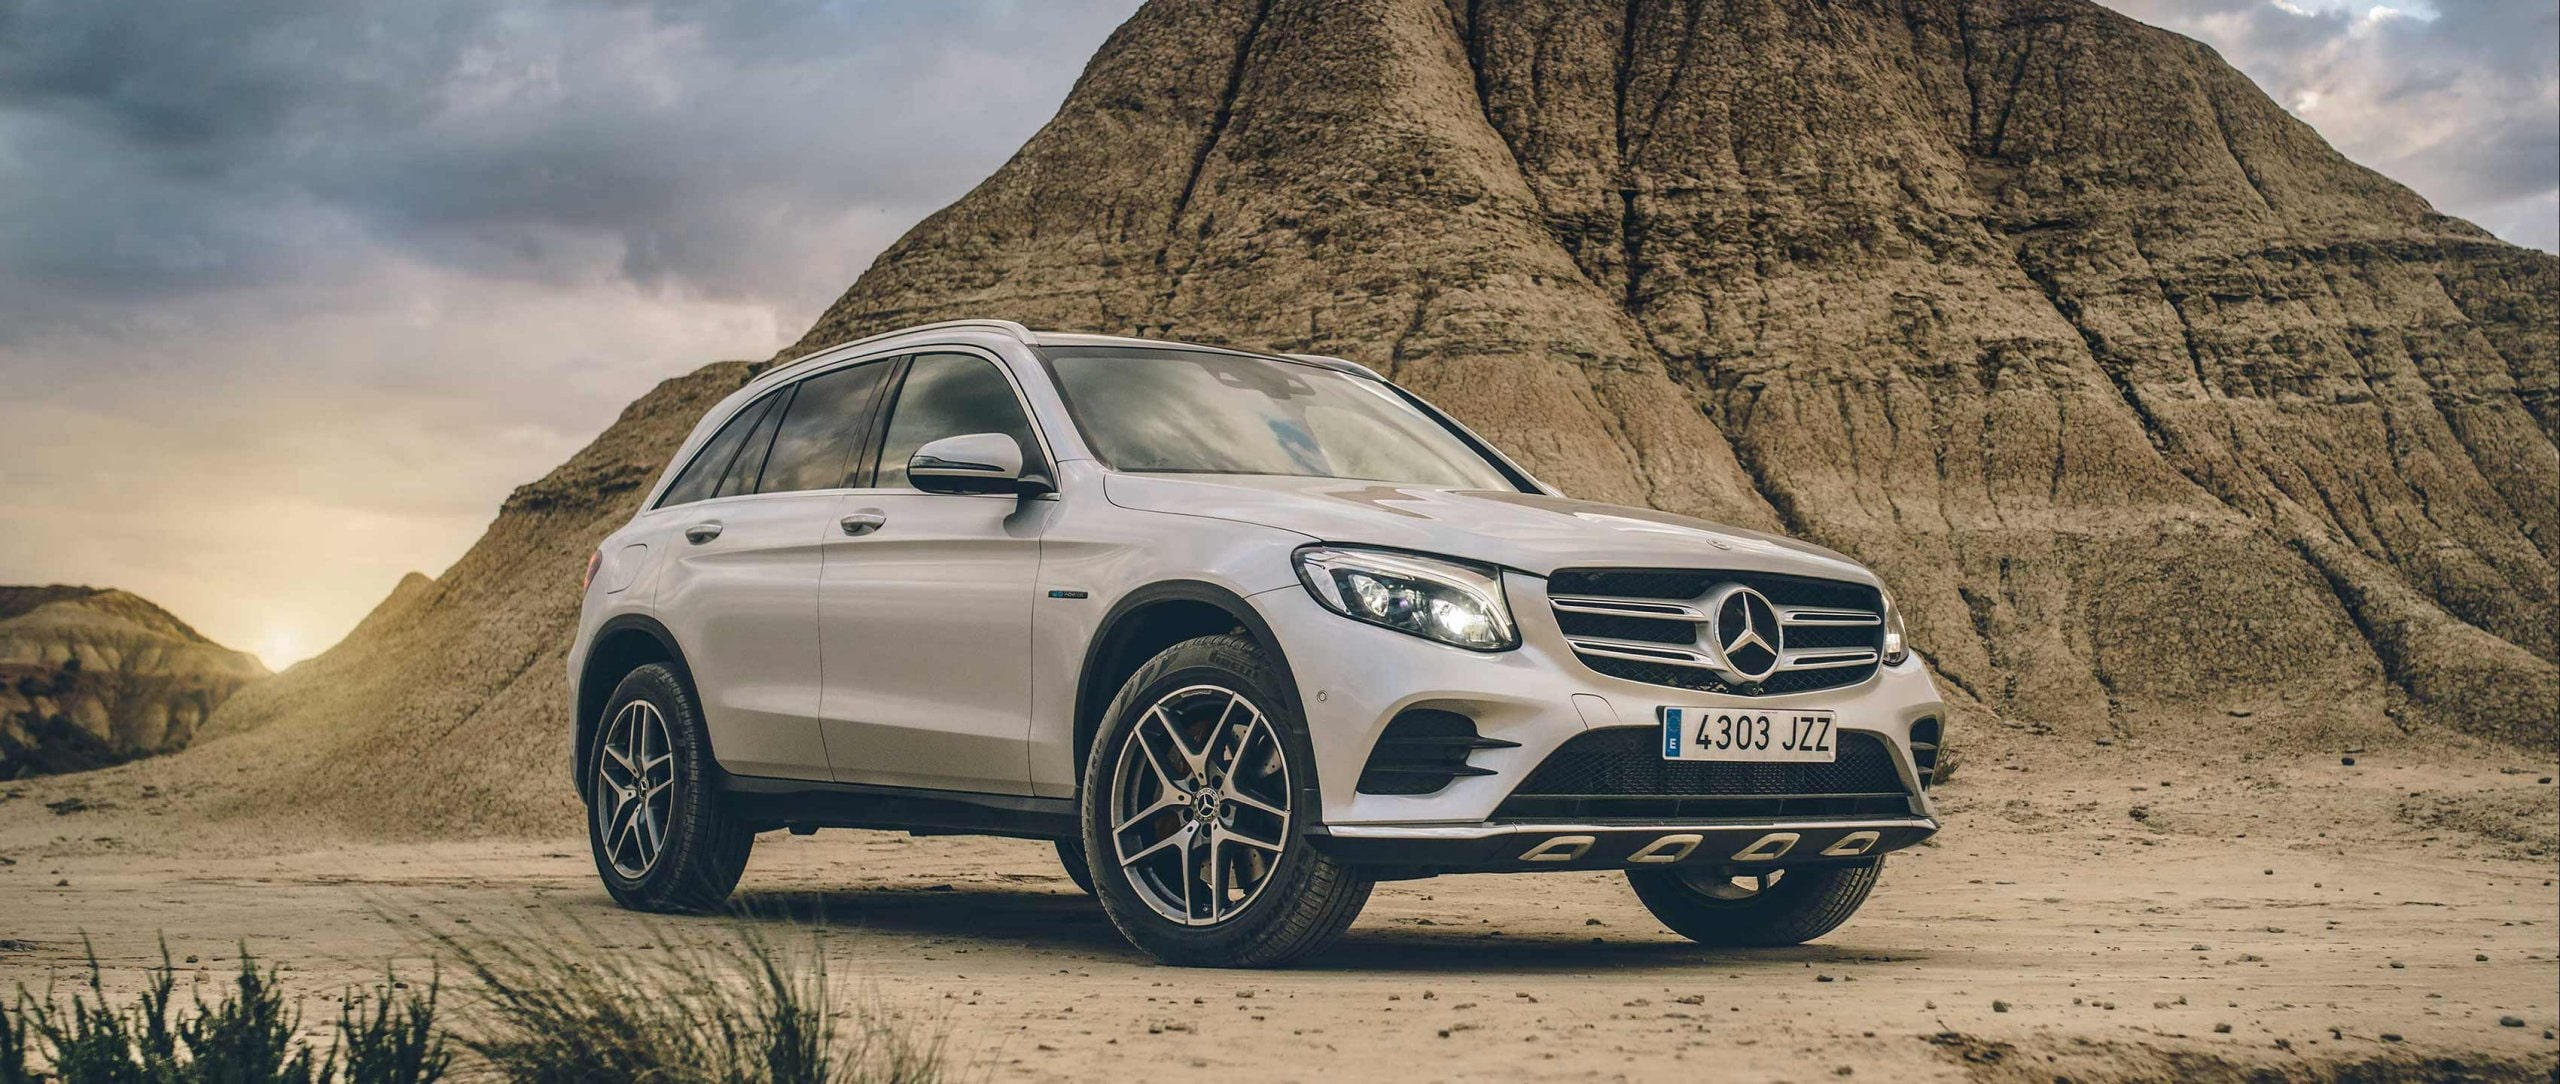 #MBsocialcar: Mercedes-Benz Calendar – September 2018: The driving experience of the GLC 350 e 4MATIC (X 253) is nowhere more contrasting than in the barren Bardenas Reales.